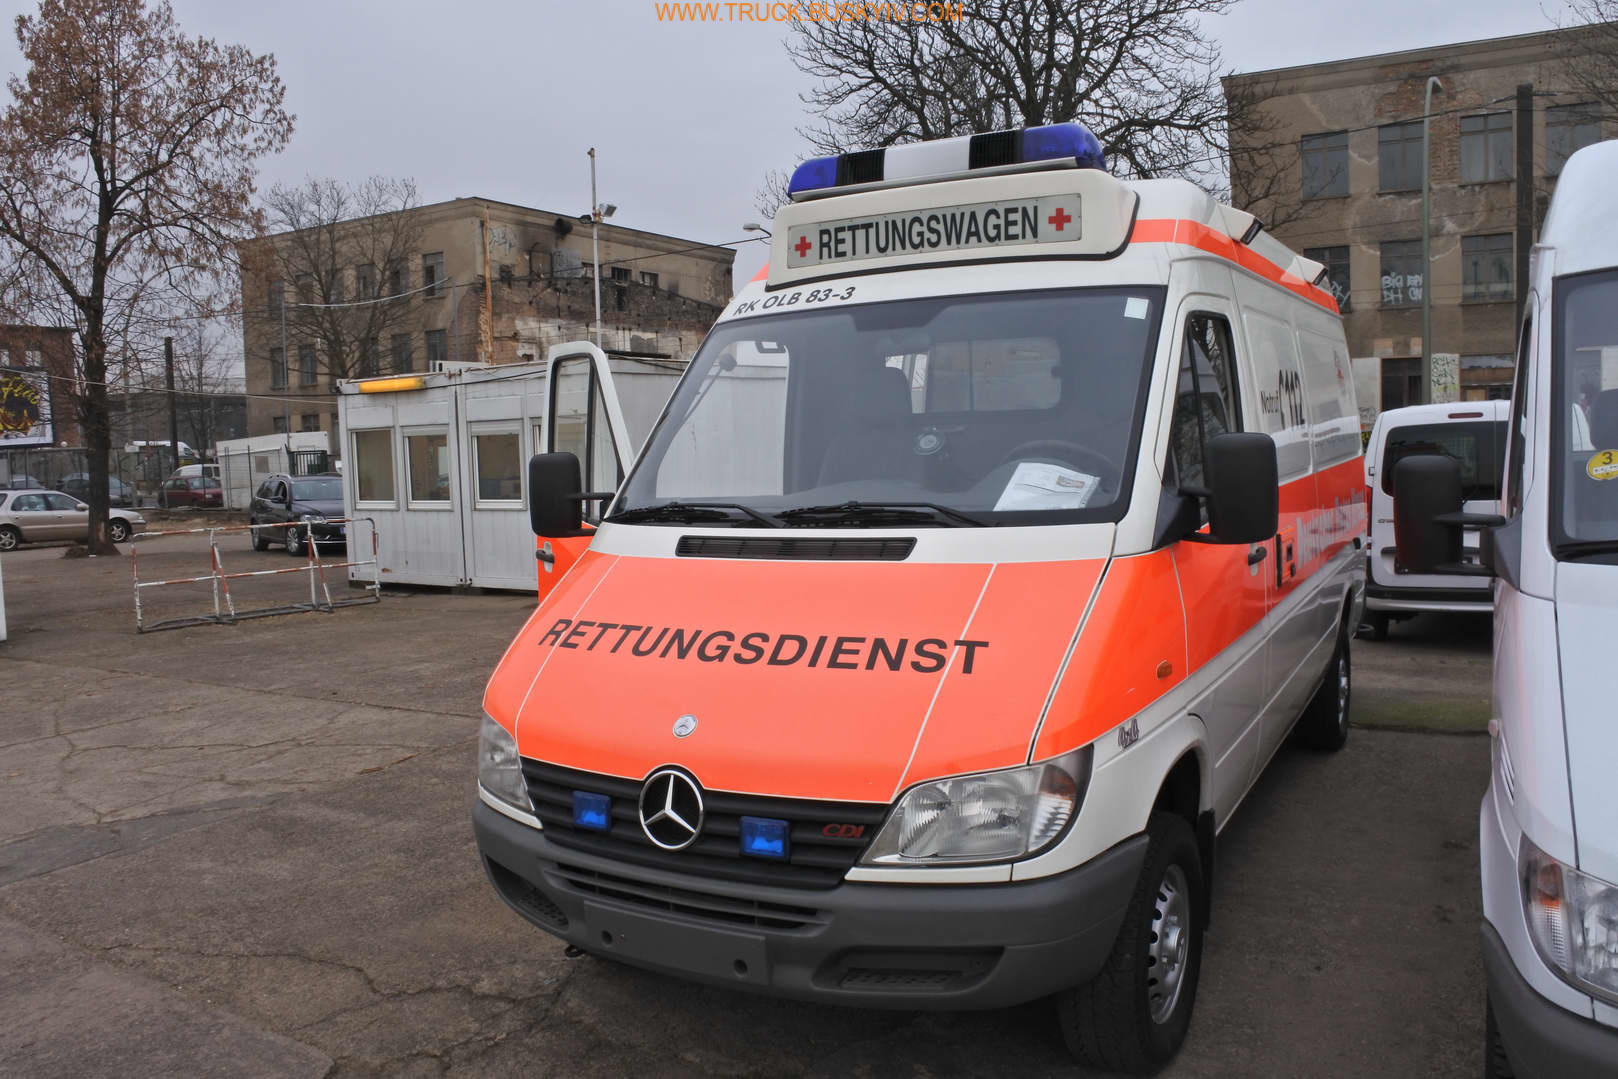 2002_mb_spr316_ambulance_4